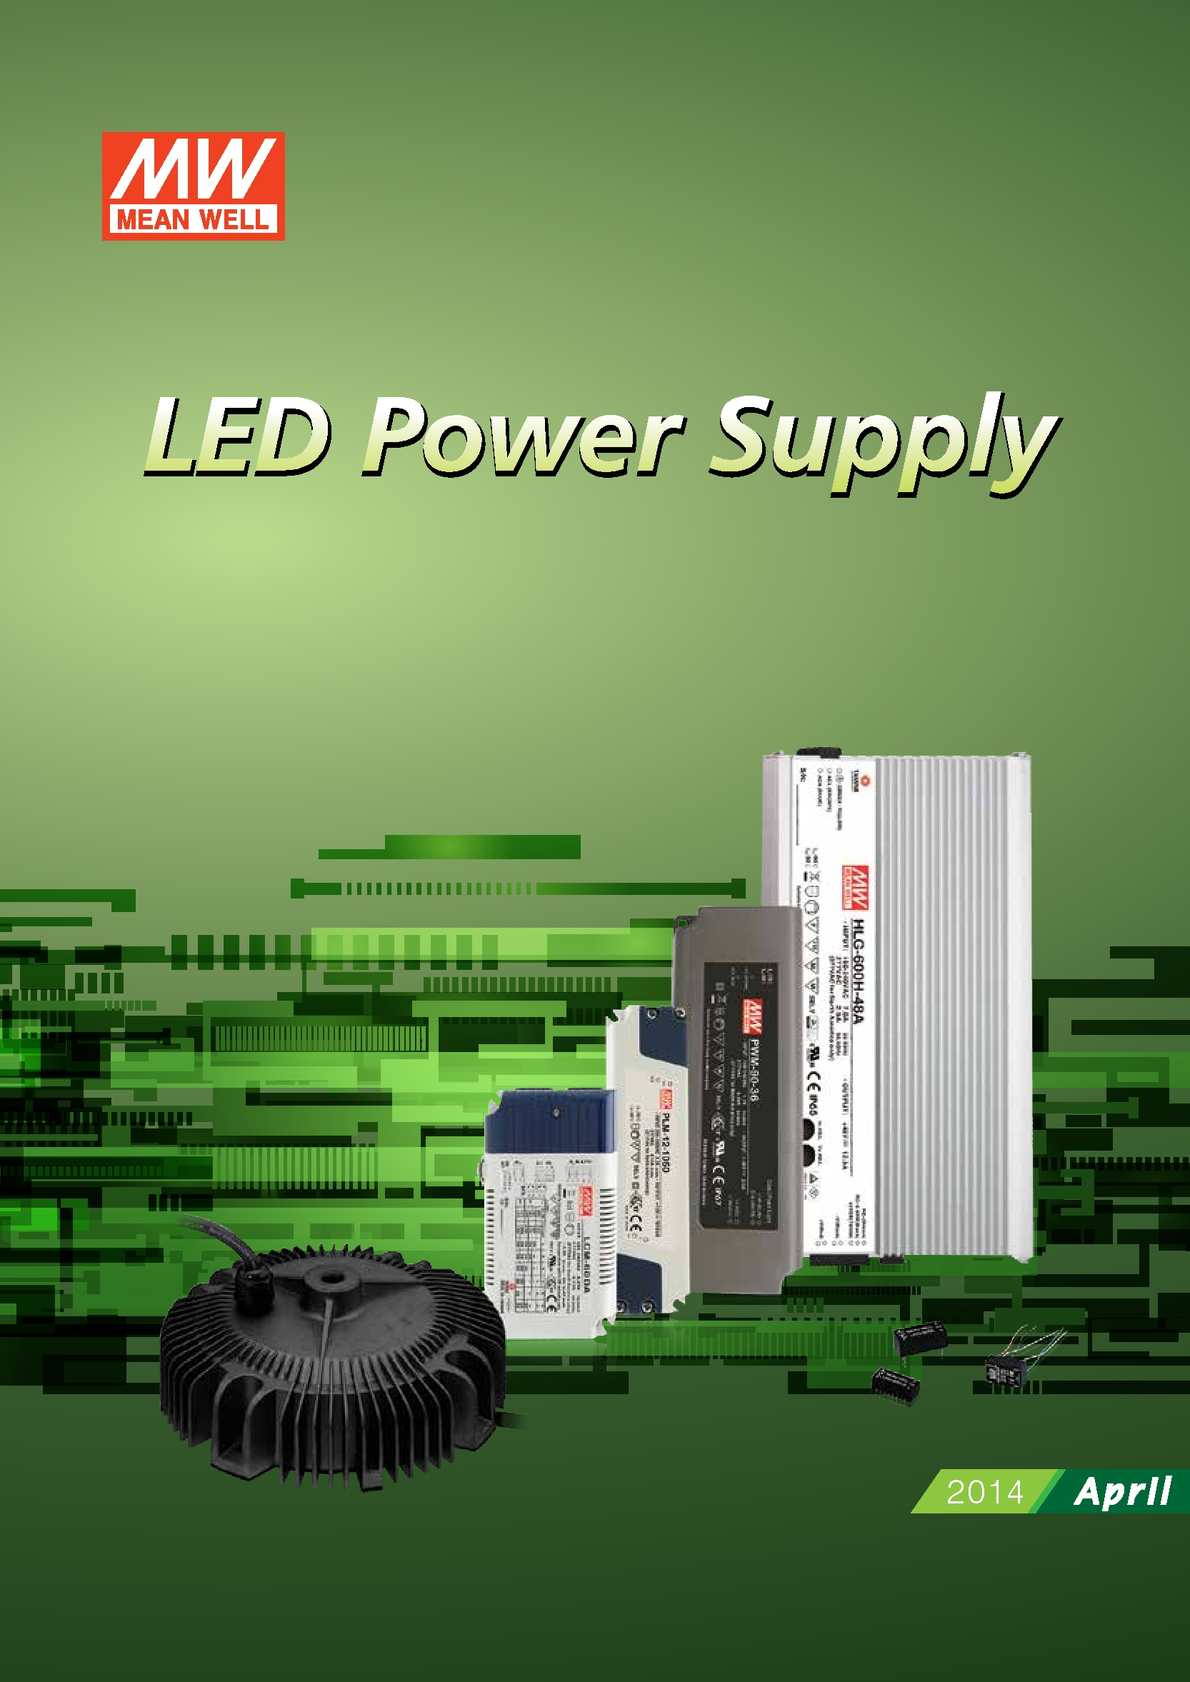 MW Mean Well PLC-60-12 12V 5A 60W Single Output LED Power Supply with PFC